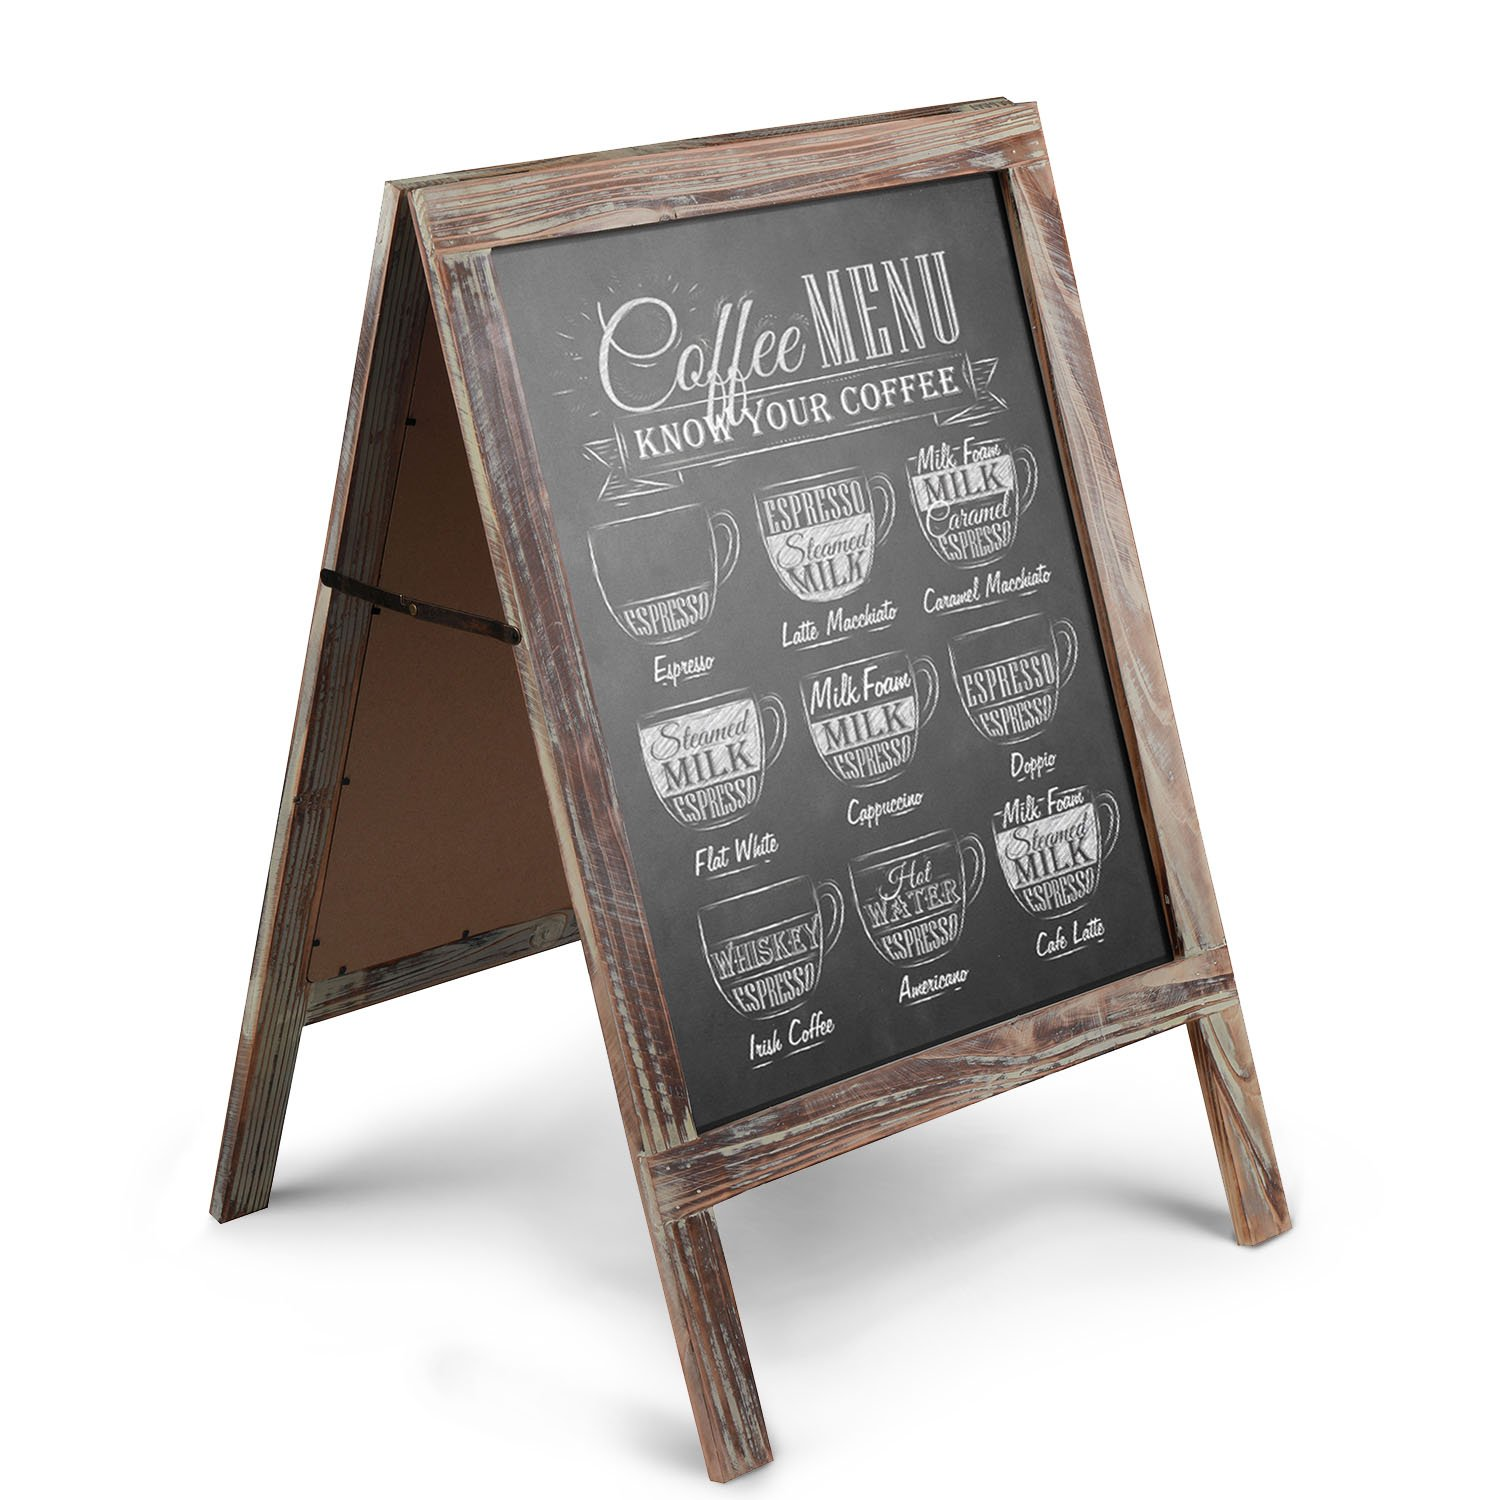 Flexzion A-Frame Chalkboard Sign Rustic Wooden Sidewalk Easel Chalk Stand - Freestanding Sturdy Sandwich Board Double Sided Message Menu Display - Vintage Torched Restaurant Chalkboard for Cafe & Bar